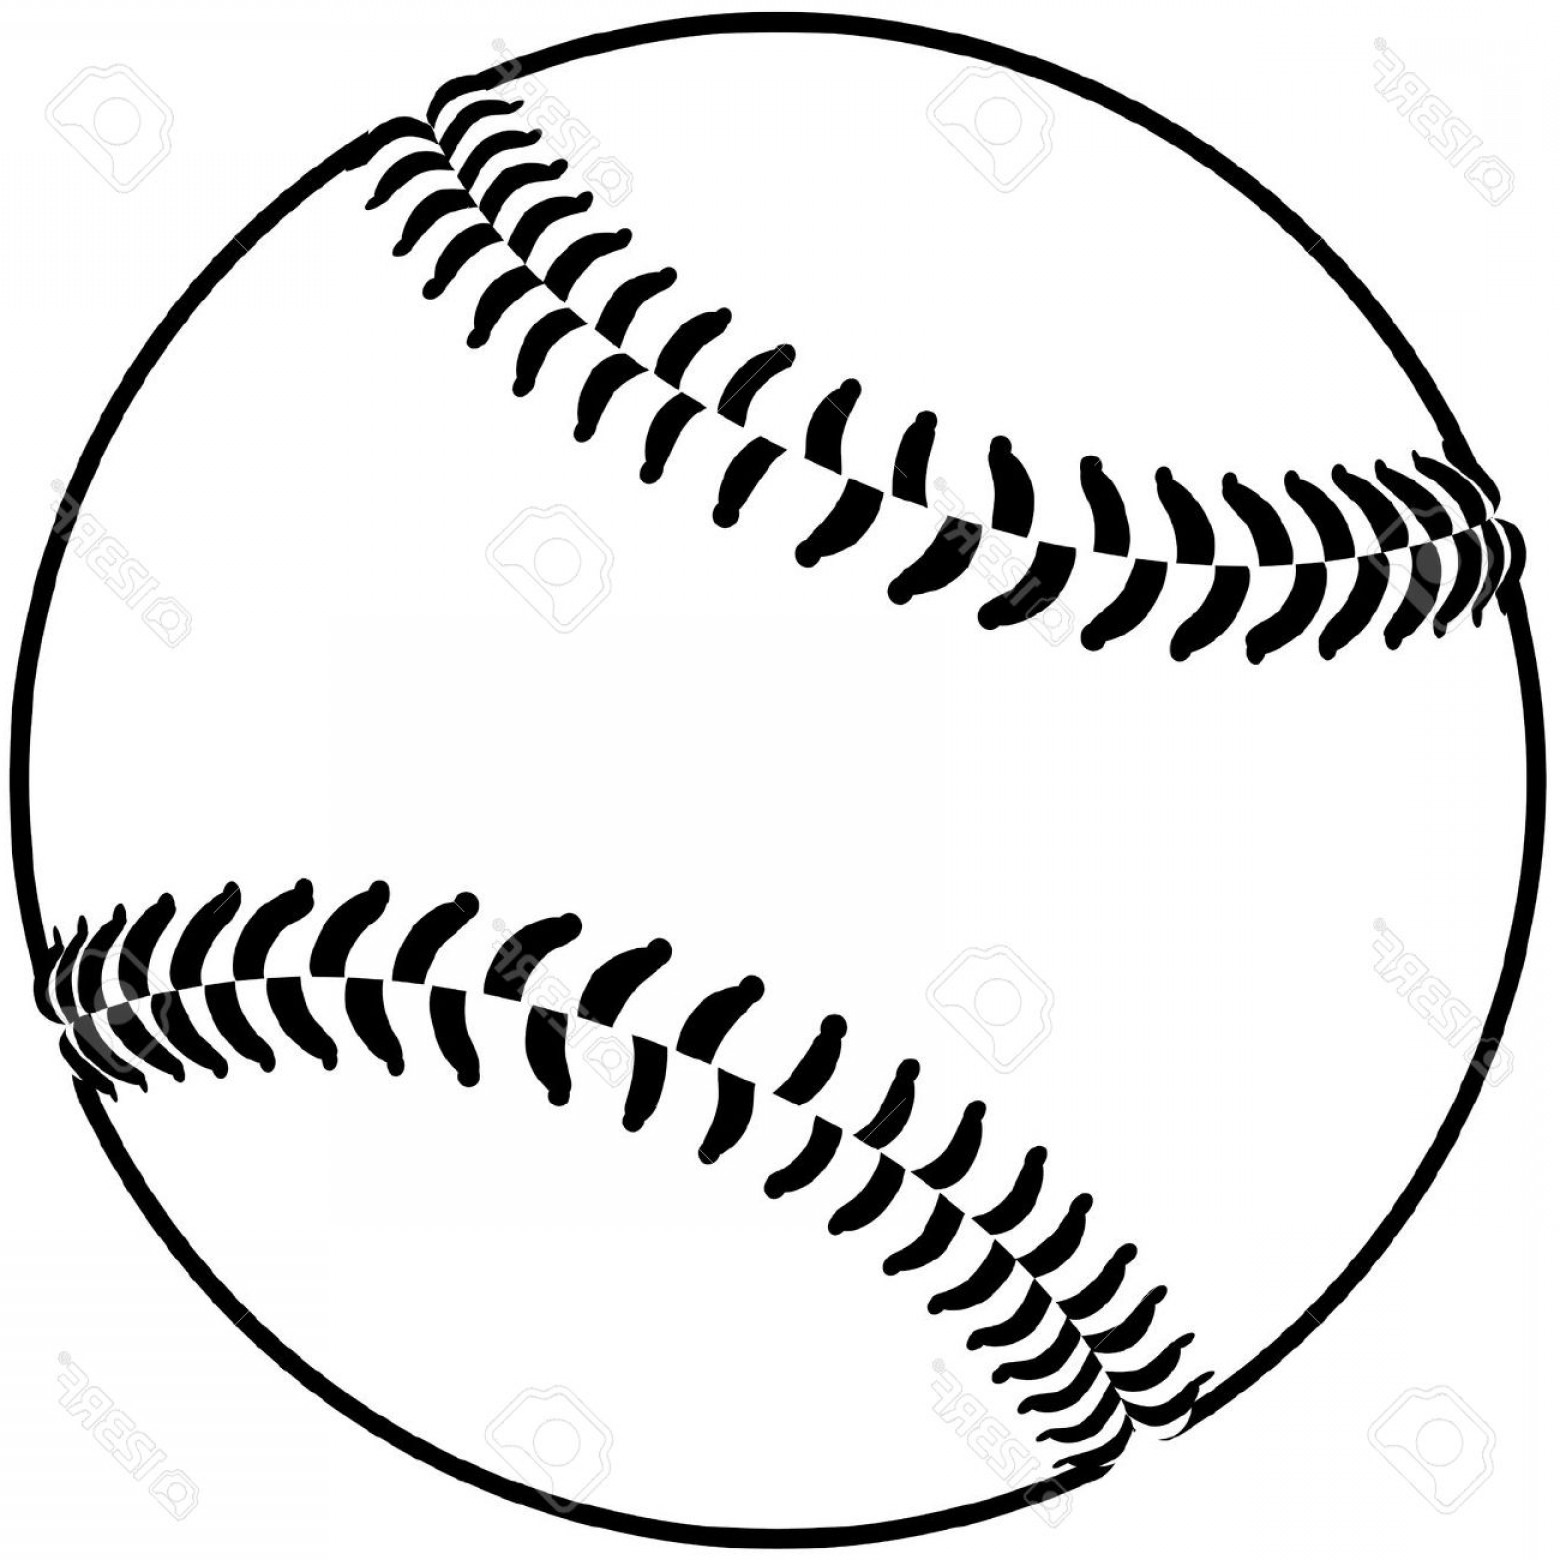 Softball clipart. Black and white drawn